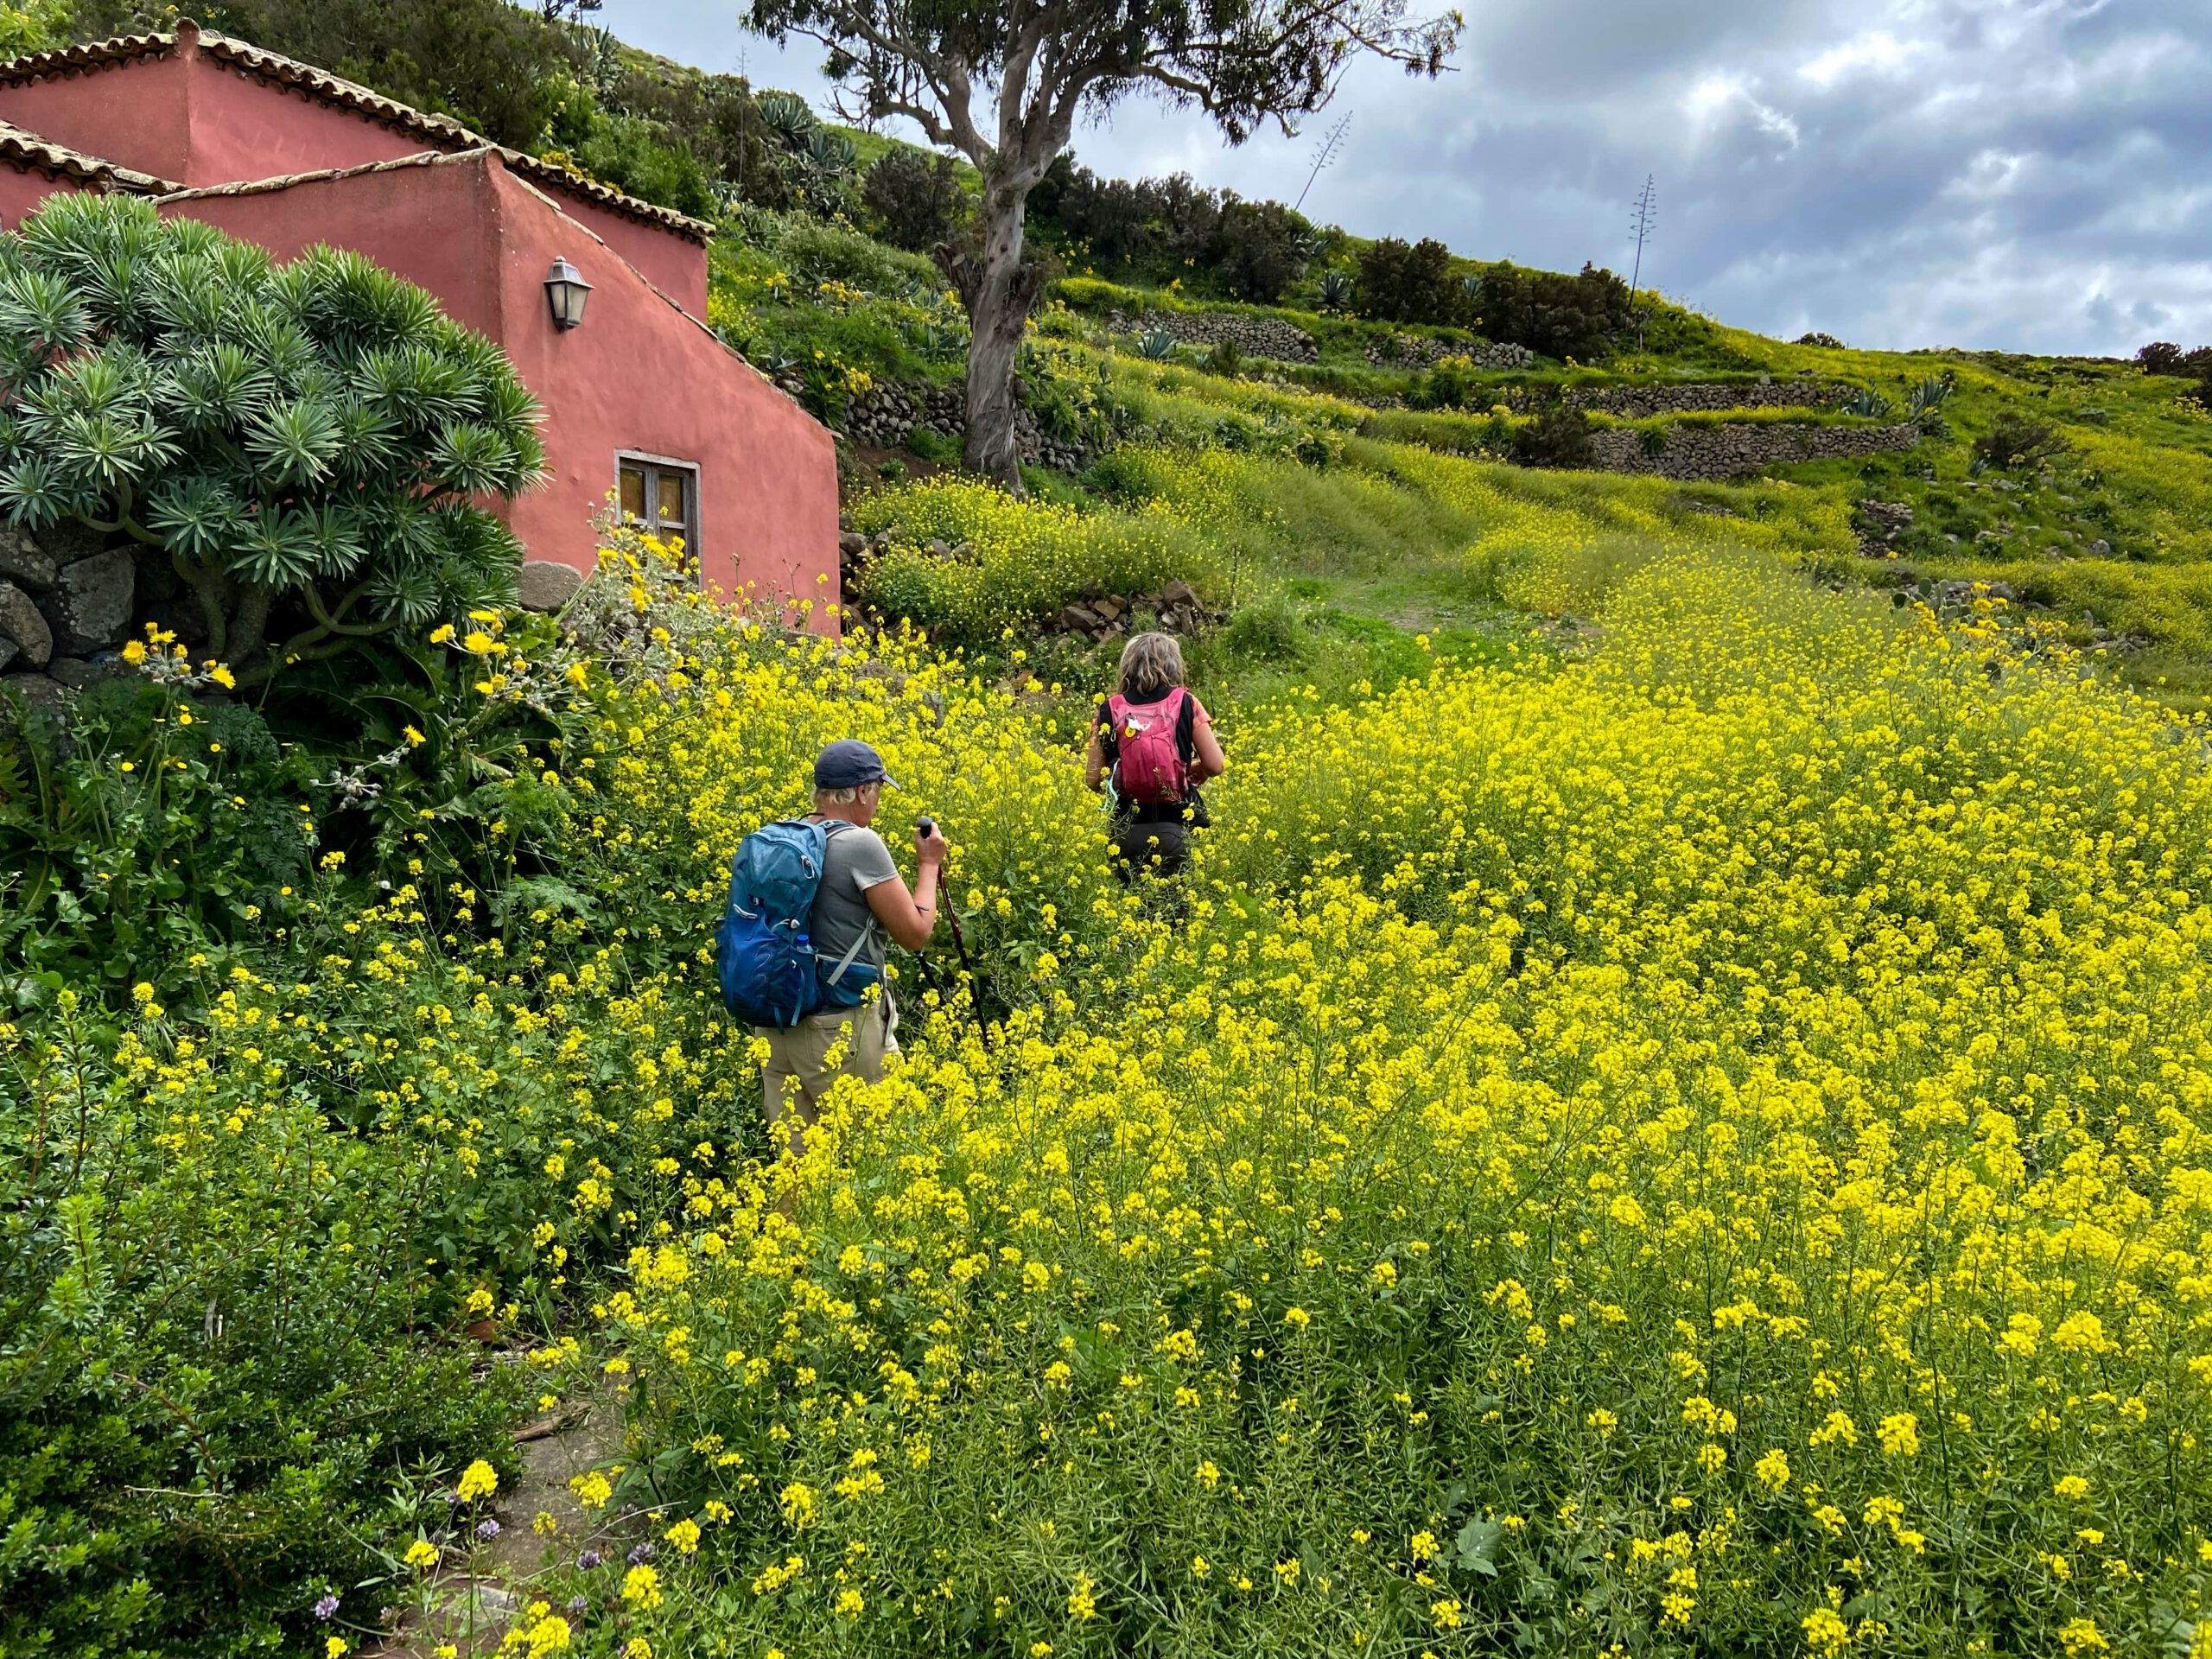 Hiking trail through green meadows and blooming flowers